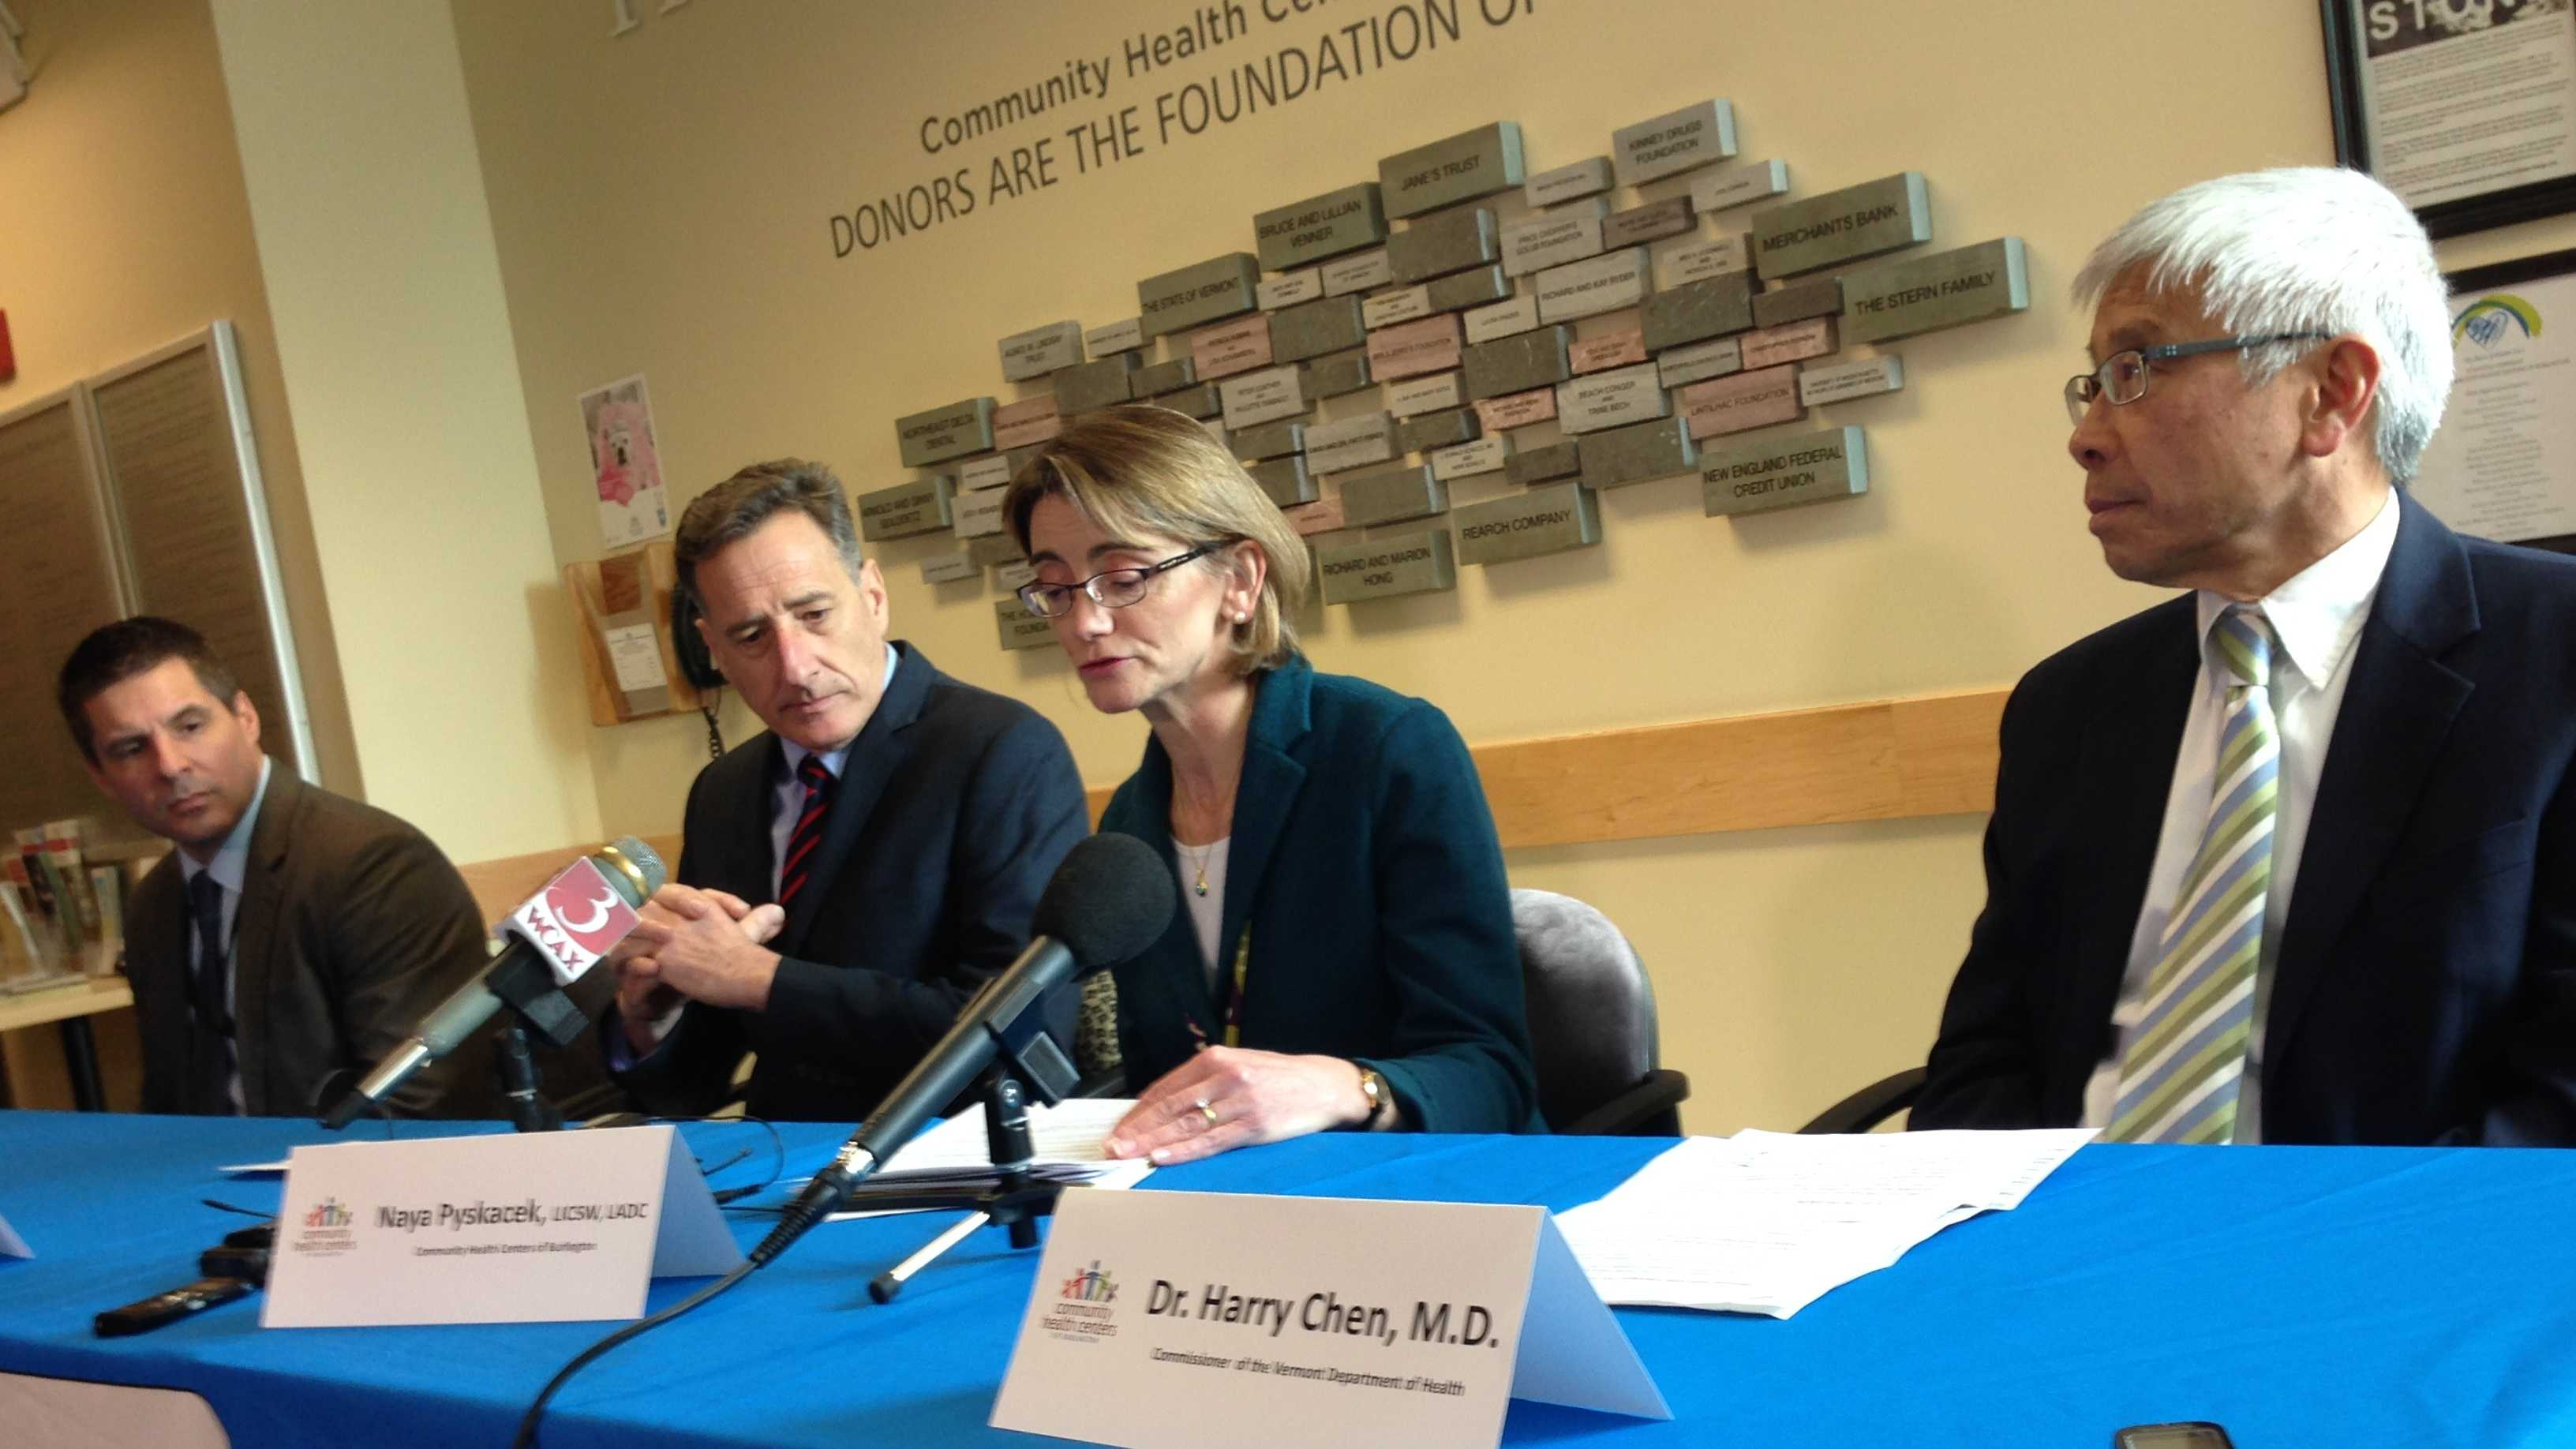 Gov. Peter Shumlin participates in a news conference Friday at the Community Health Center in Burlington regarding a $10m federal health grant. Dr. Harry Chen is at right.